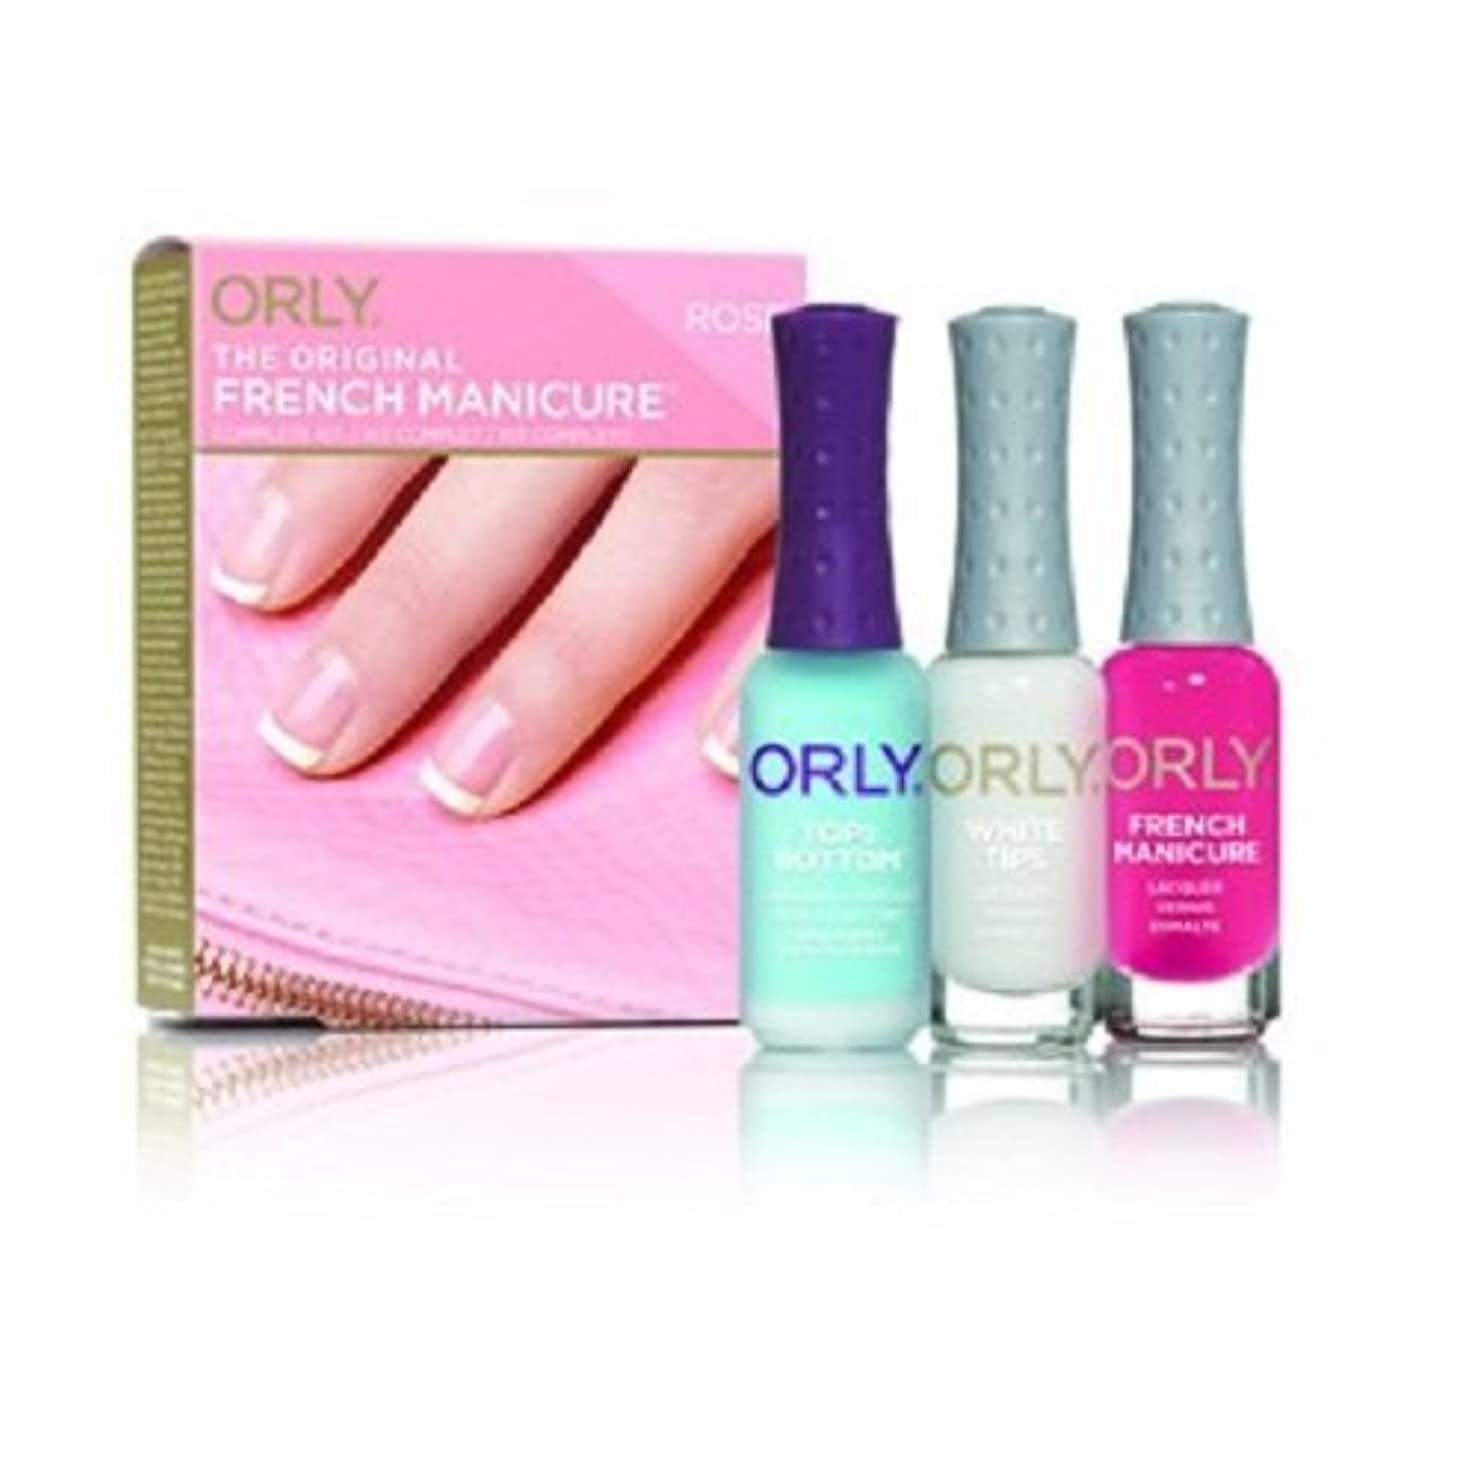 Orly French Manicure Complete Kit - Rose